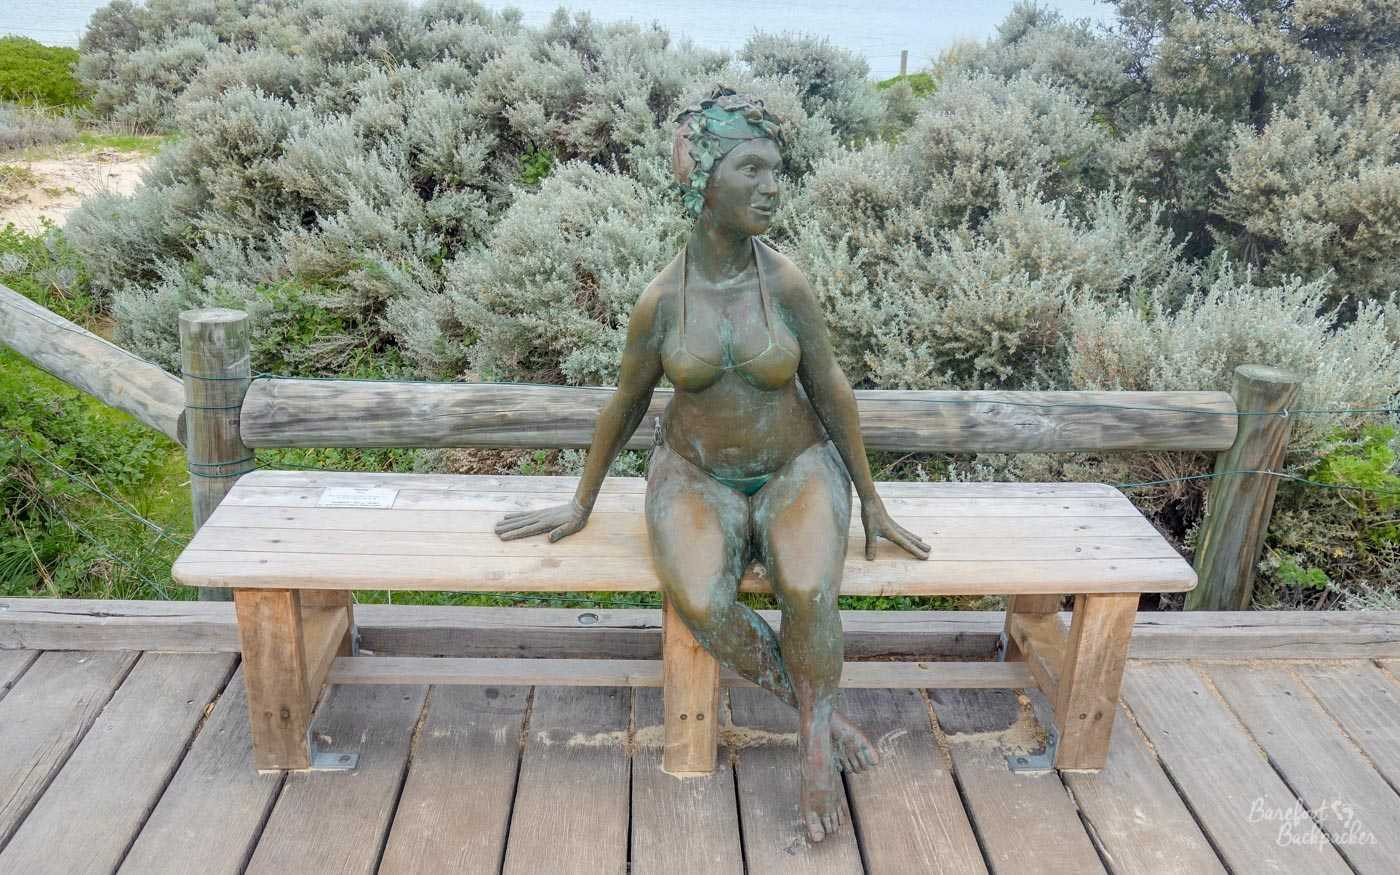 Statue of a woman in a bathing suit sat on a bench. It's called 'Bella', by Greg James.